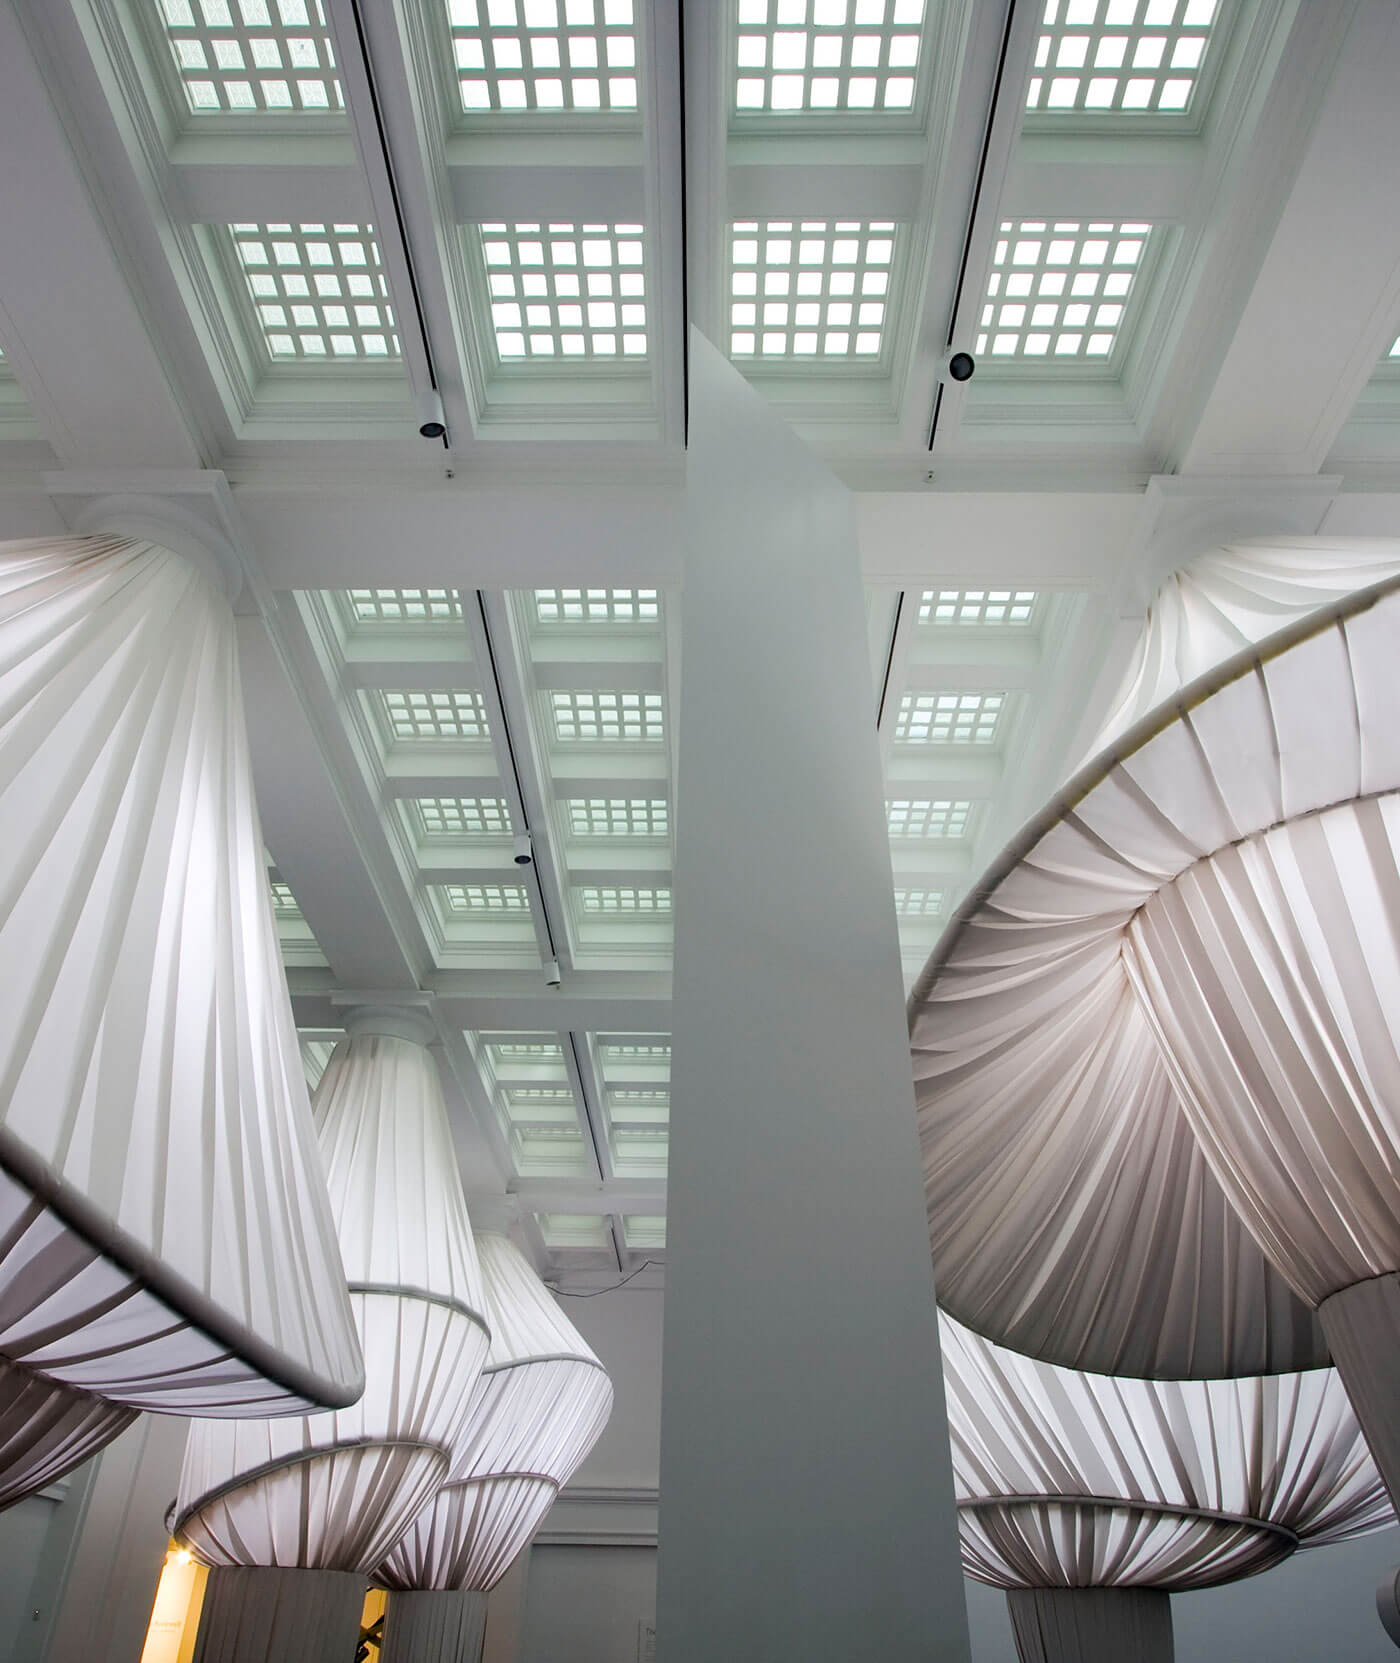 The reOrder exhbit at the Brooklyn Museum created art using 2000 yards of Sunbrella fabrics